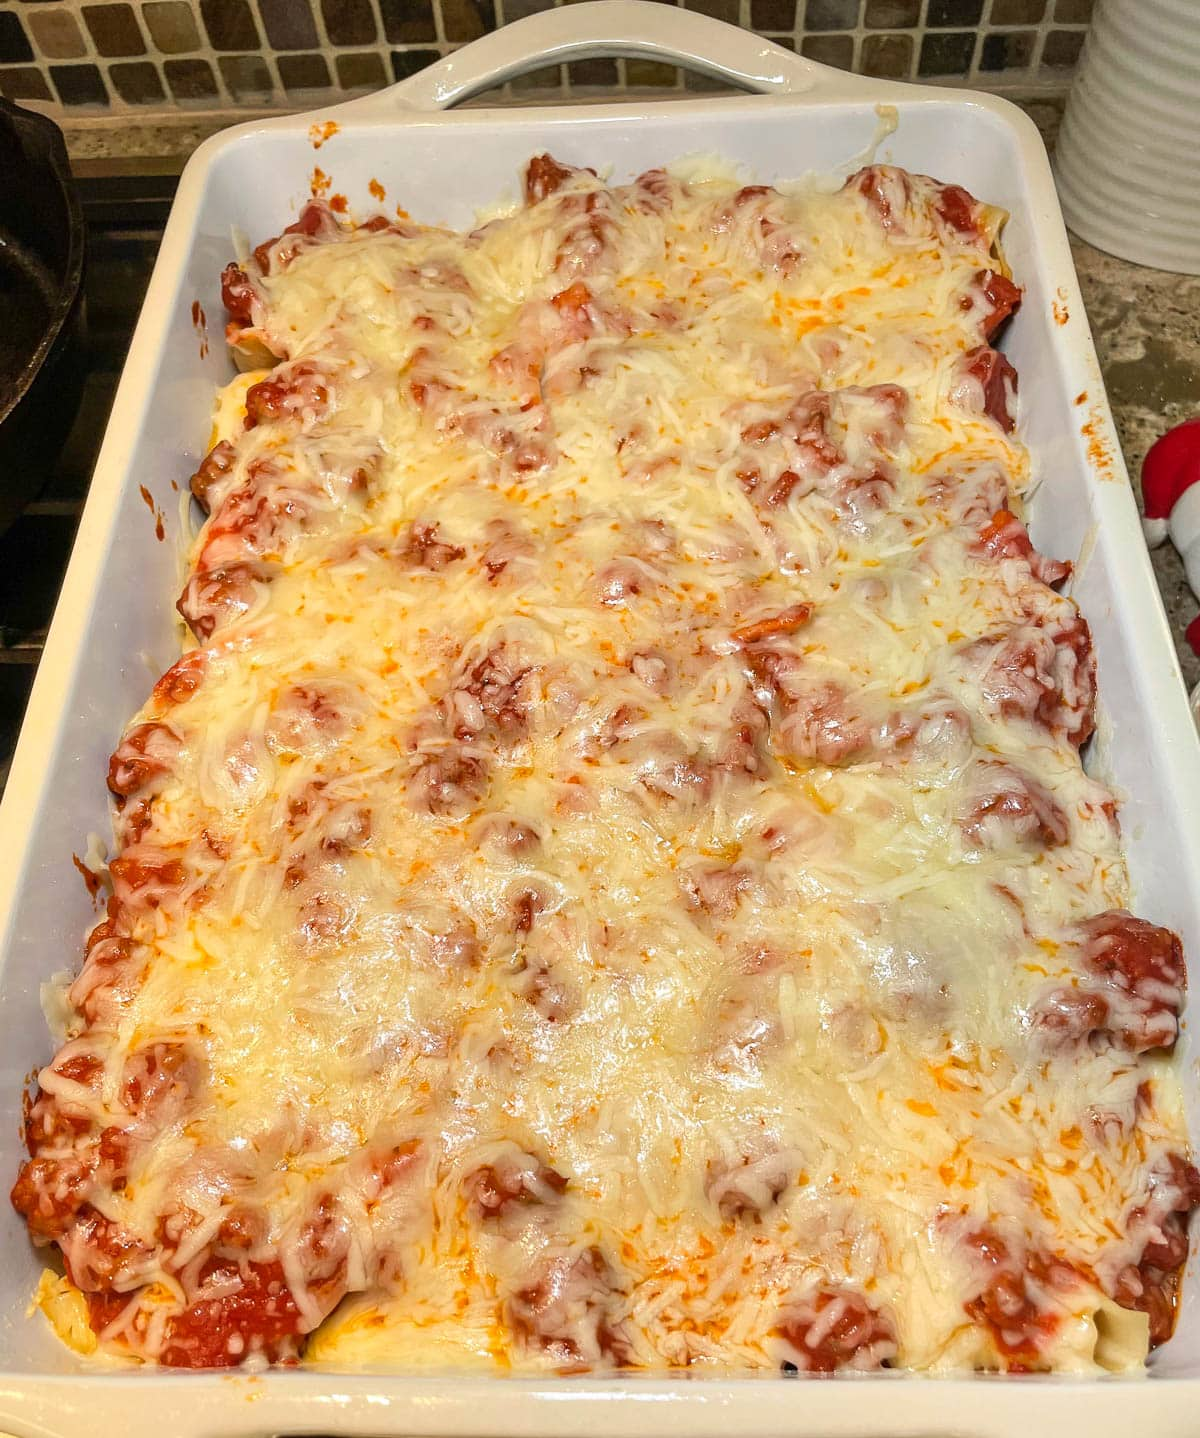 Italian stuffed pasta shells fresh out of the oven